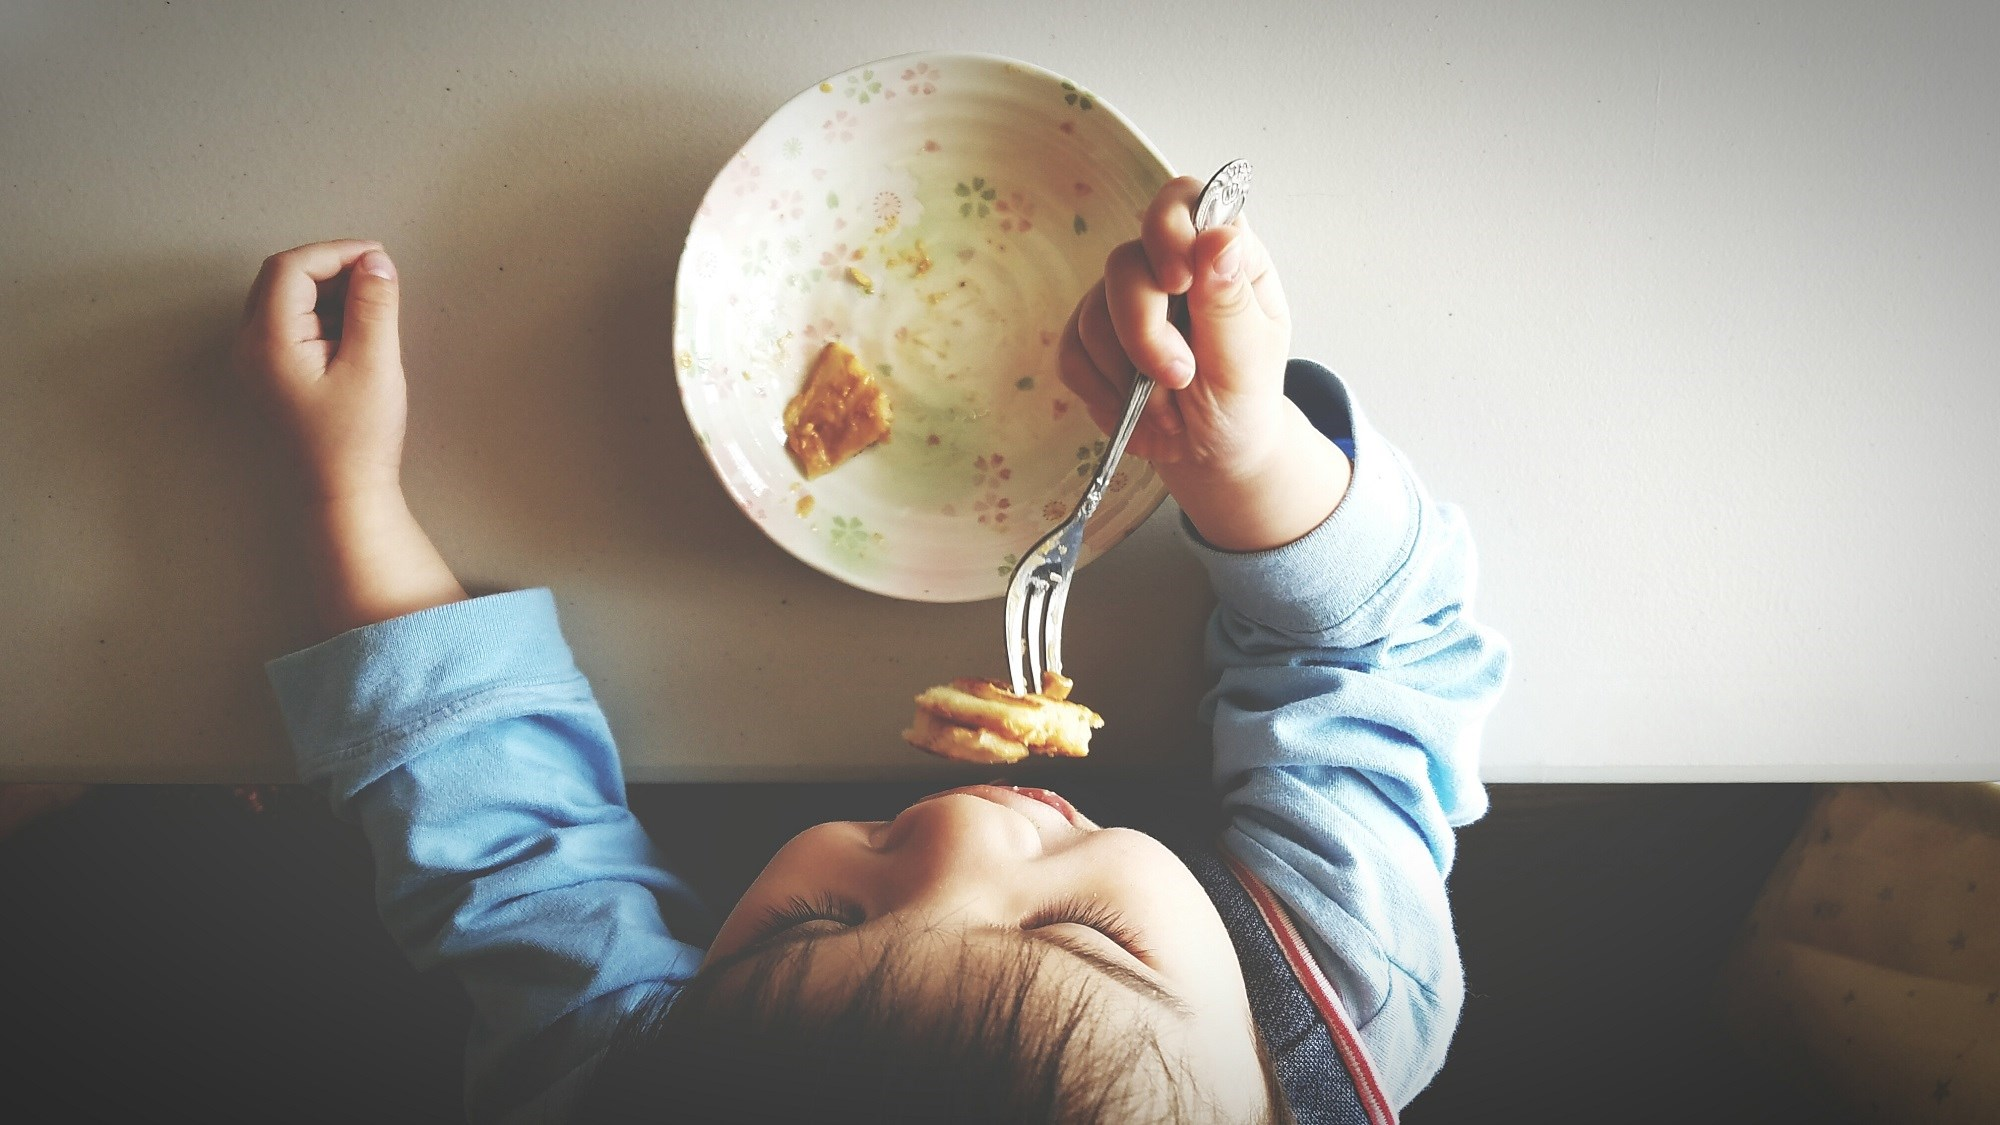 Modifying early home environment to prevent weight gain may be important for children genetically at risk for obesity.